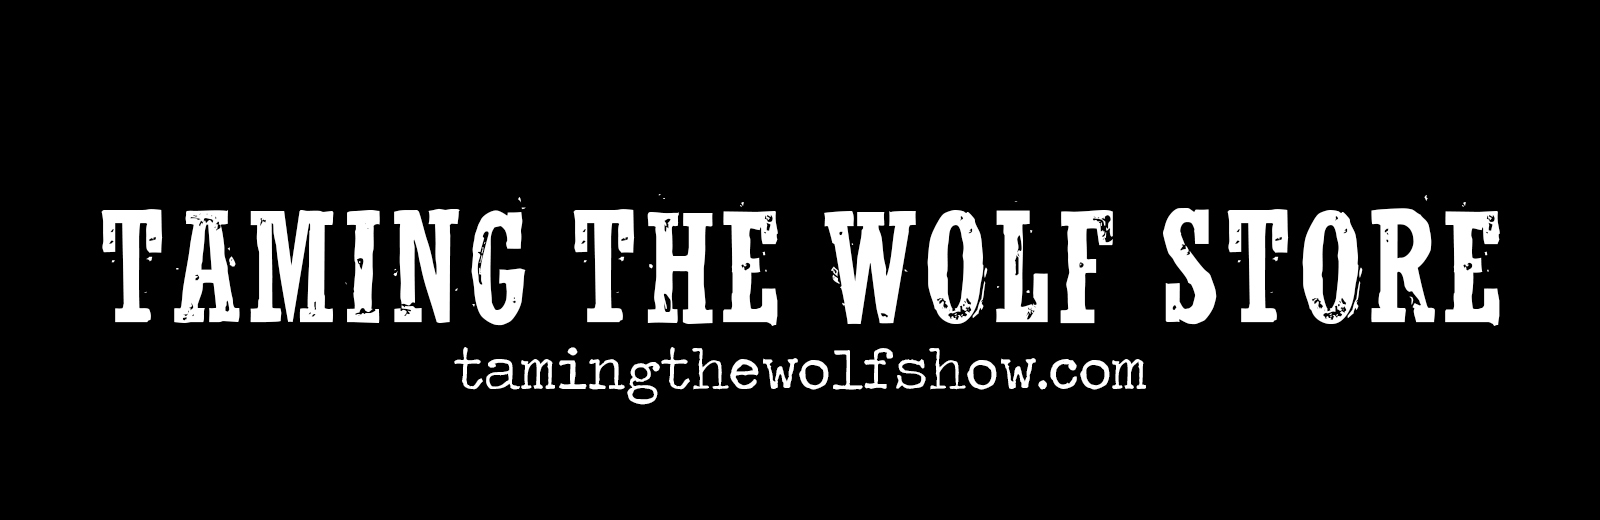 Taming The Wolf Show Store Store